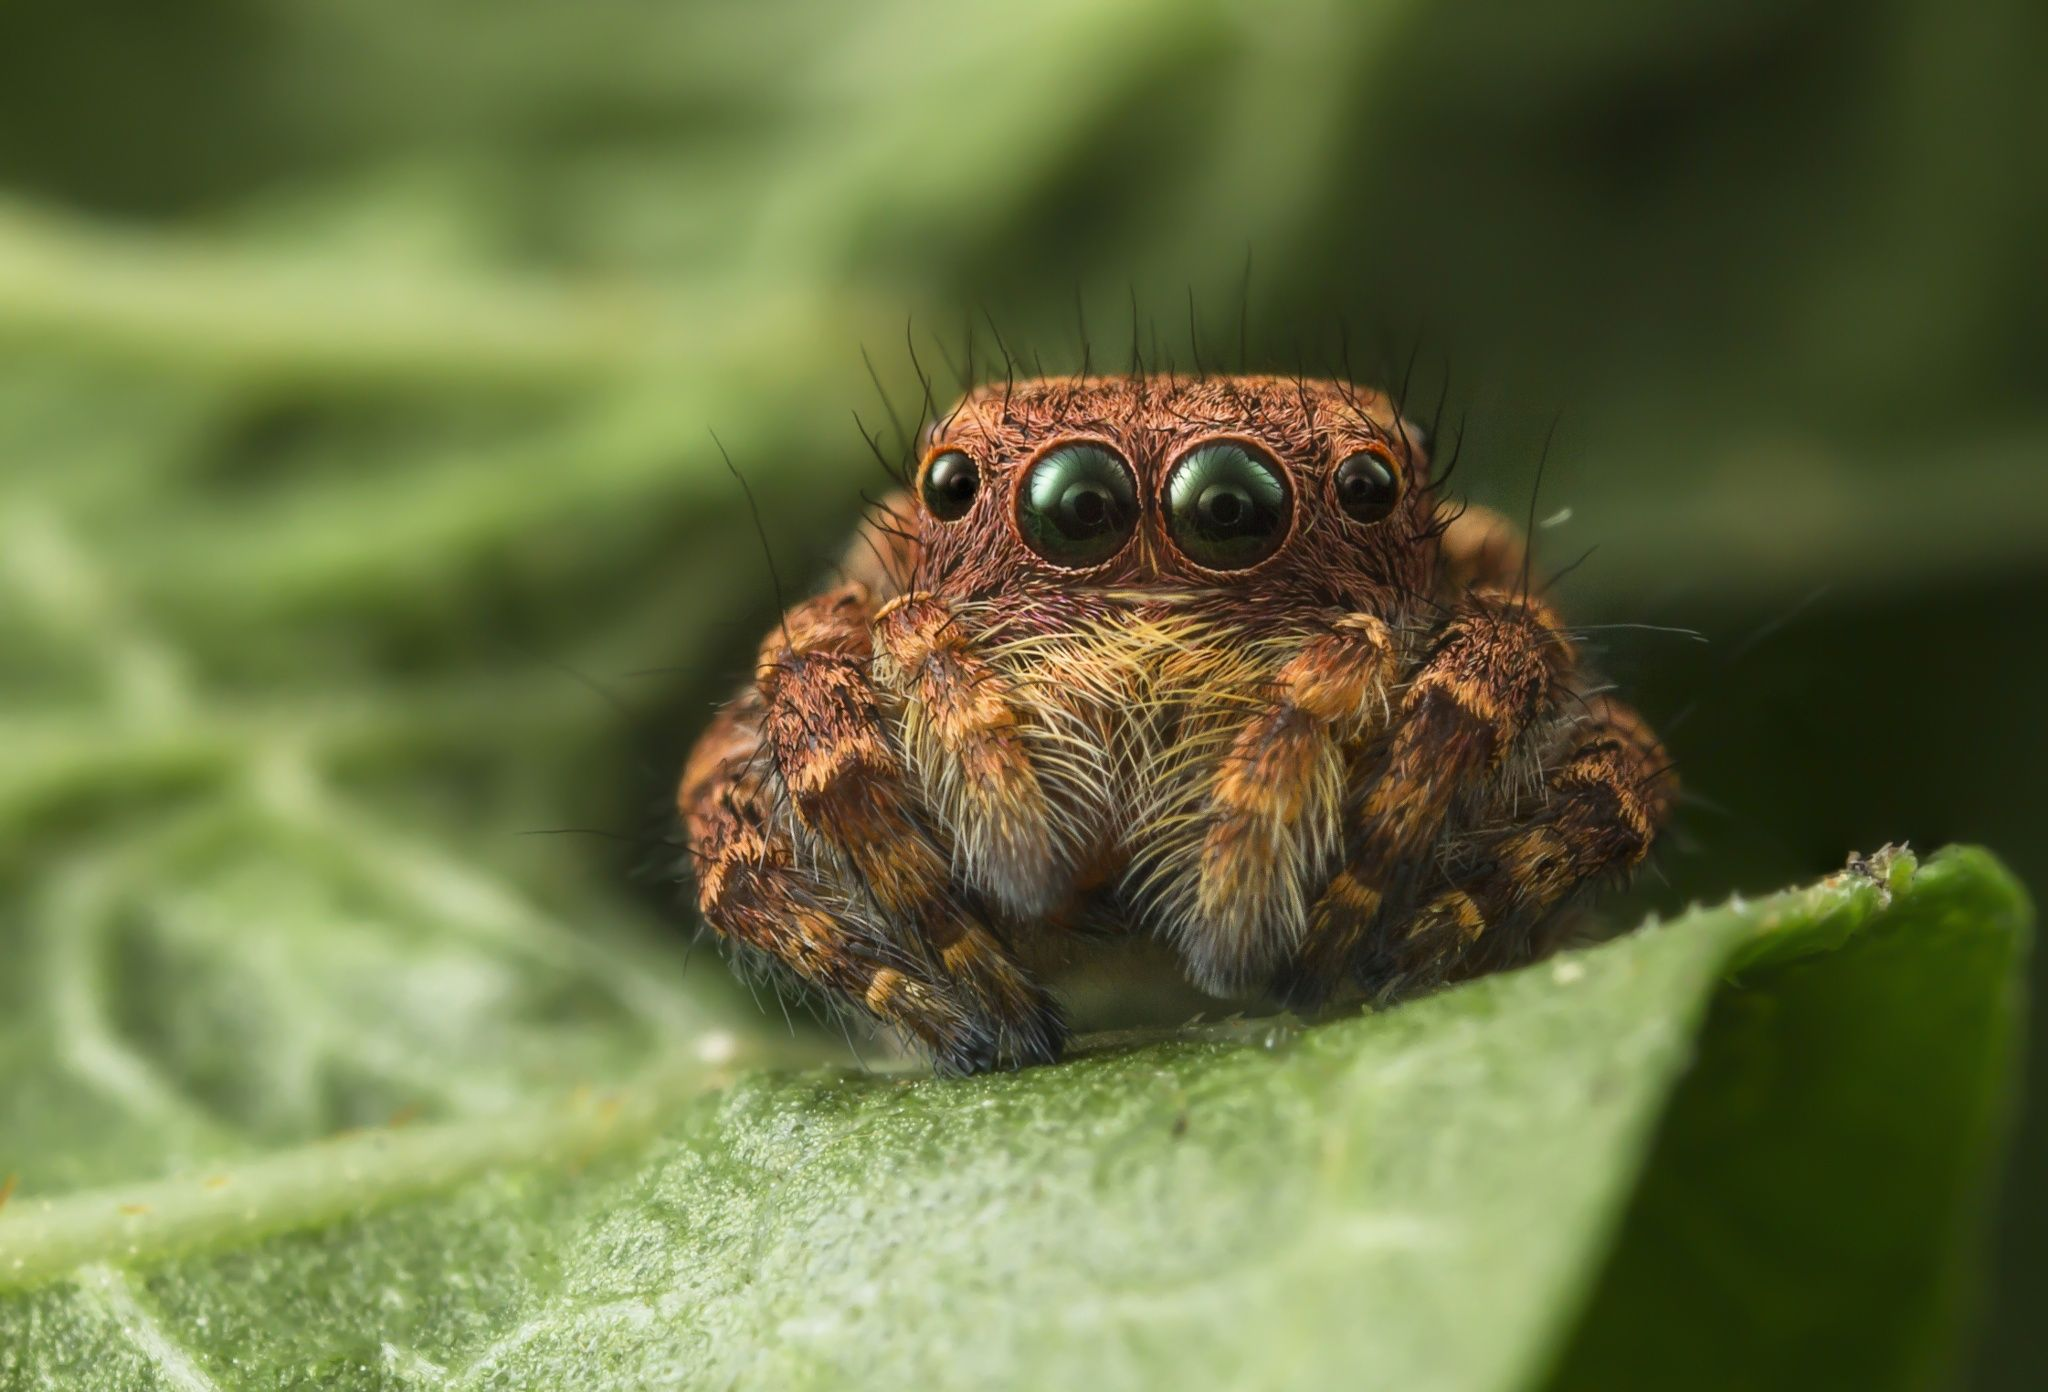 spider cute pet jumping insects lucas asher animals mites spiders 500px bugs lwin animal pets visit discover